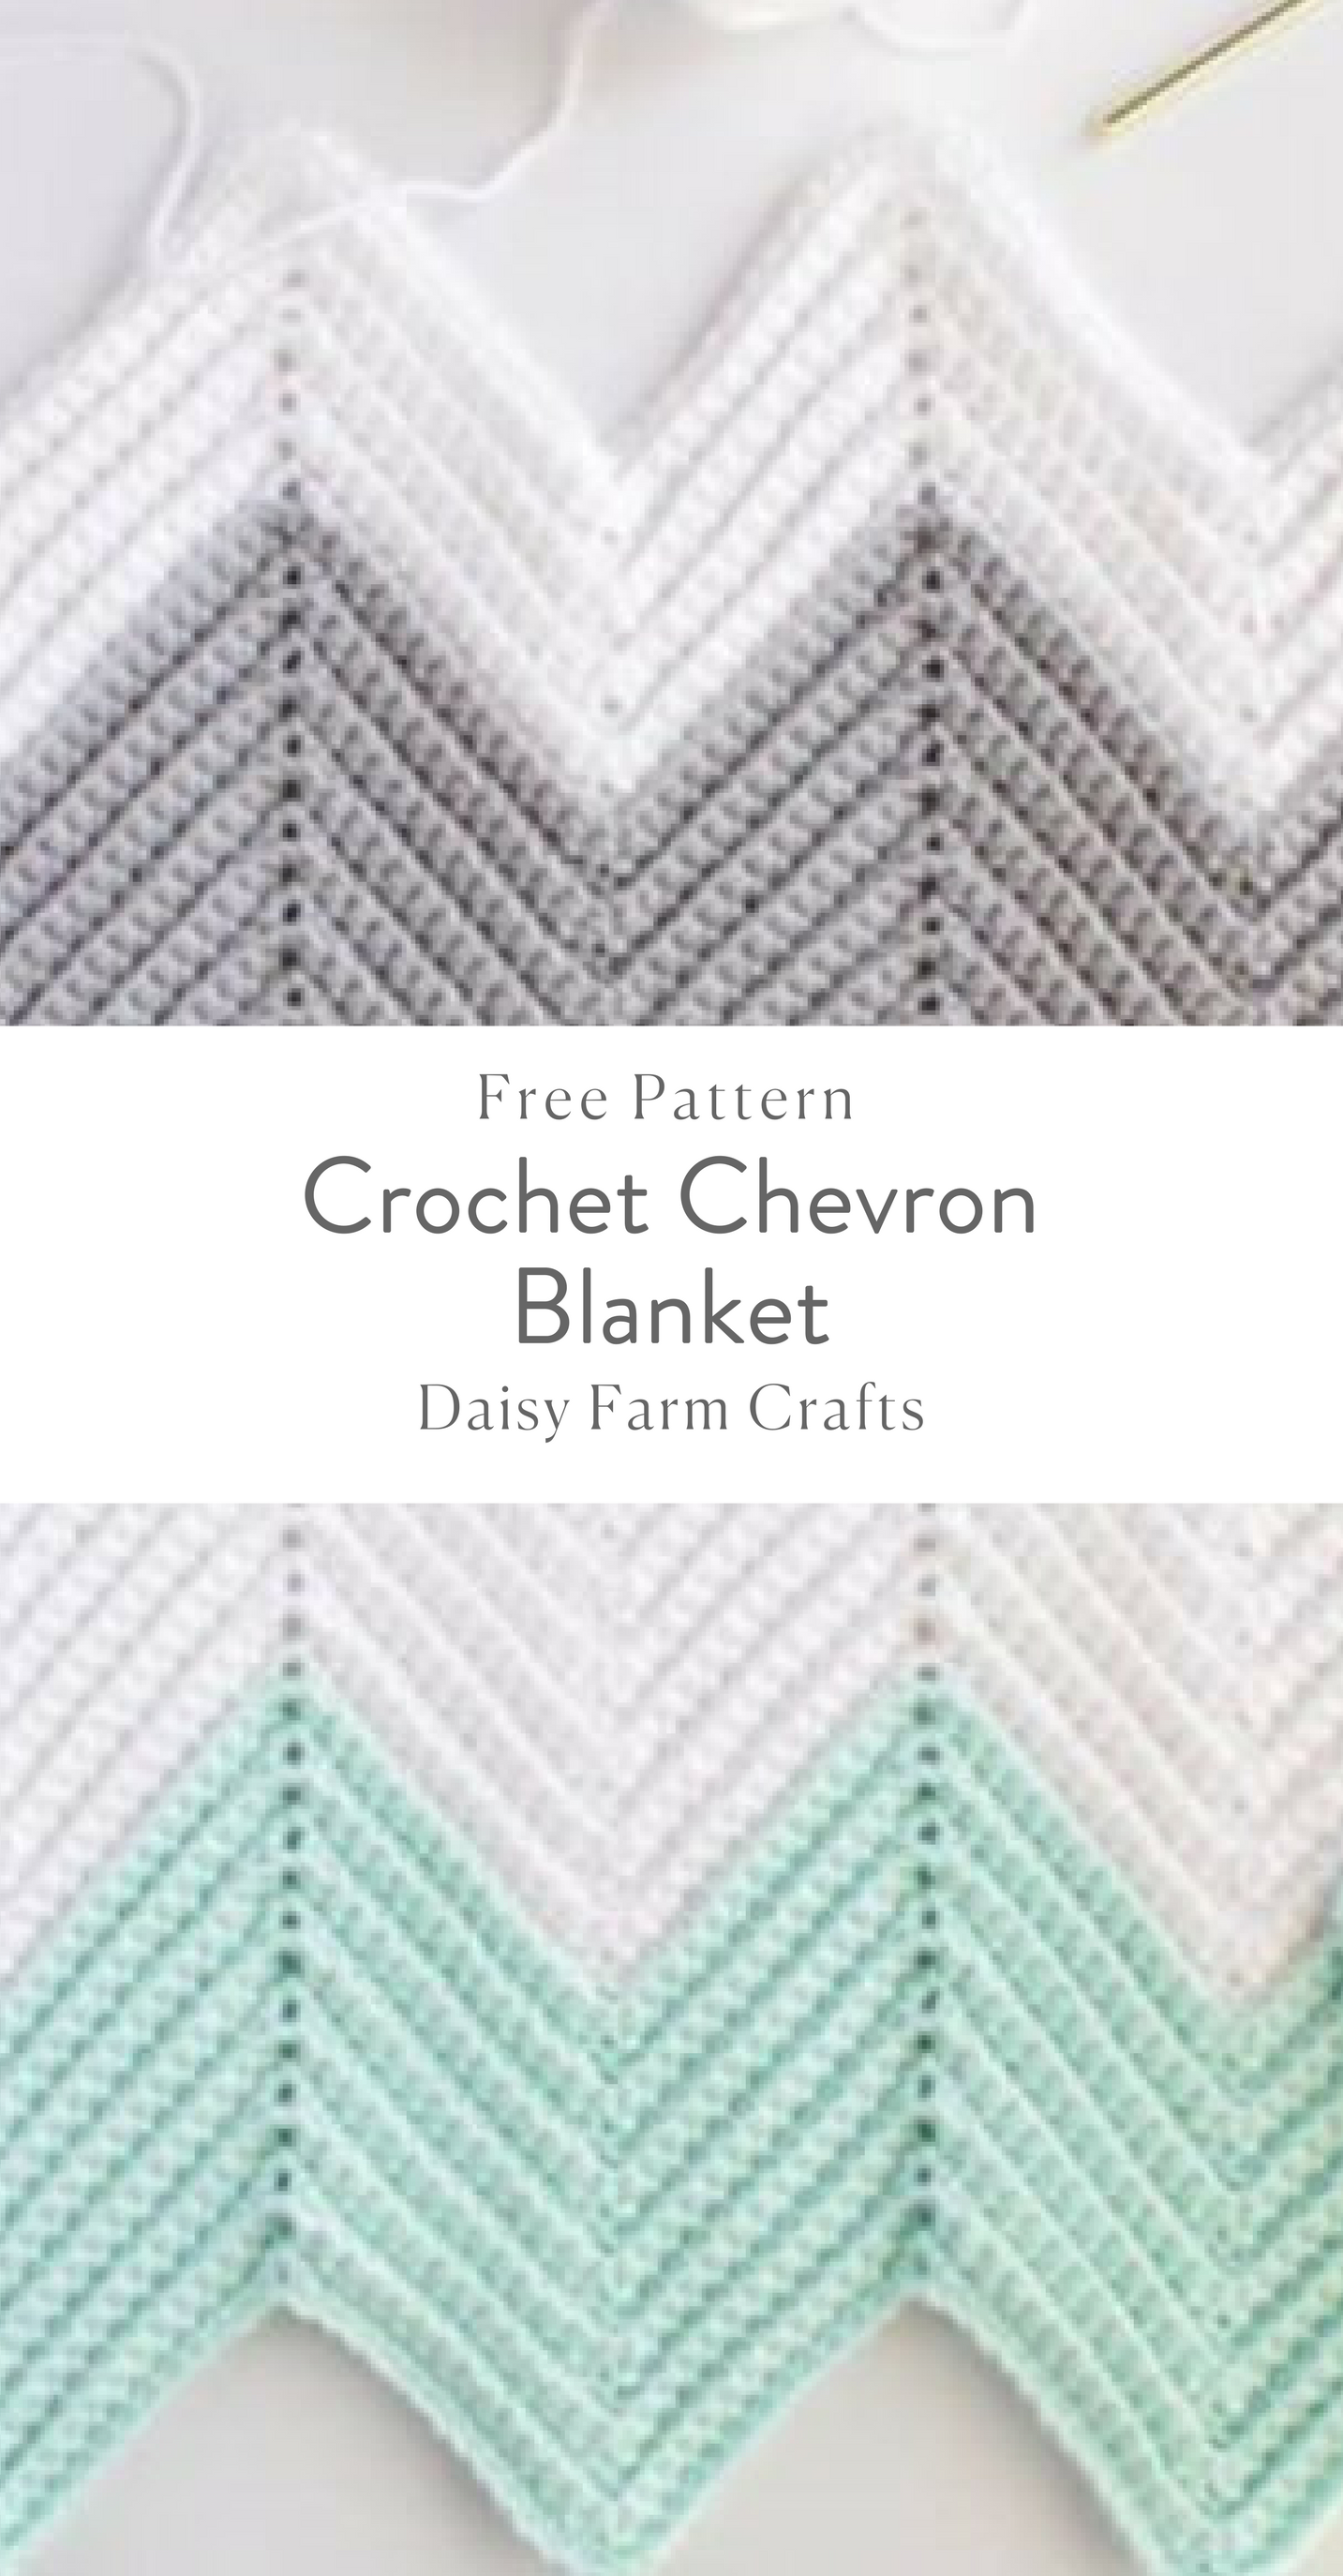 Free Pattern - Crochet Chevron Blanket #CrochetProjects | Crochet ...